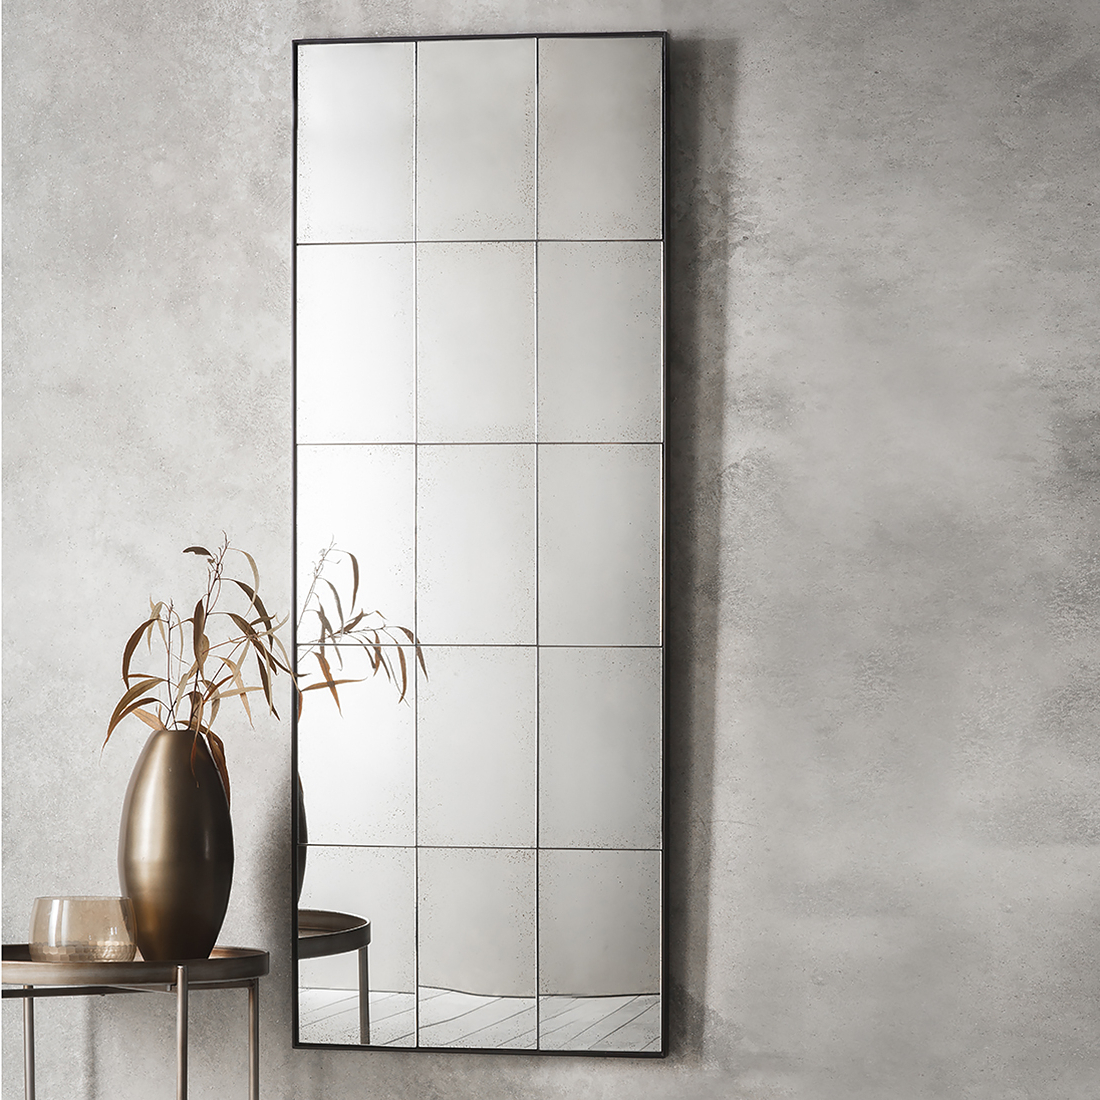 Widely Used Rectangular Black Panel Mirror With Vintage Glass Regarding Unusual Large Wall Mirrors (View 14 of 20)